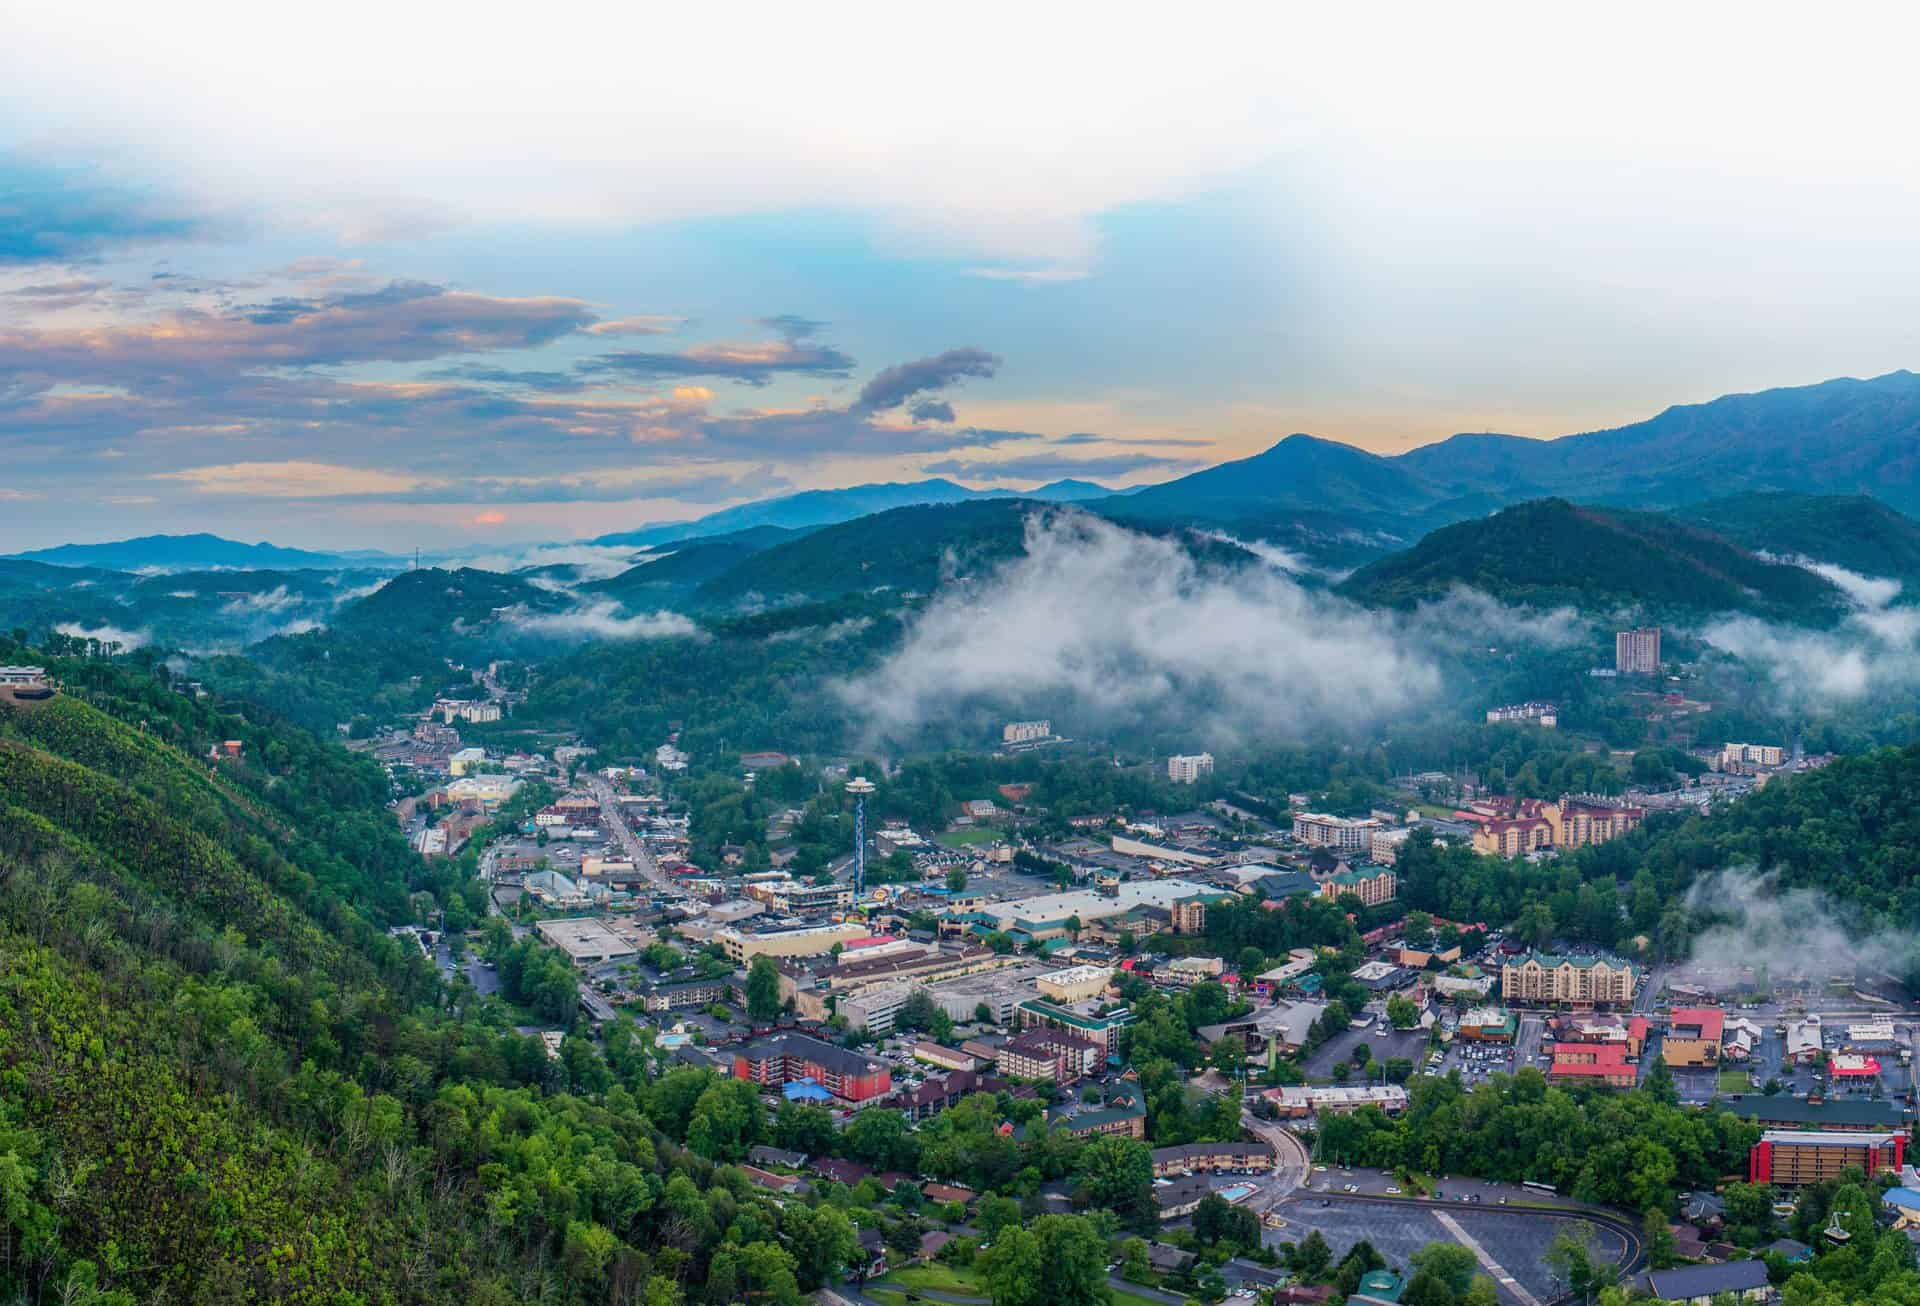 gatlinburg aerial view